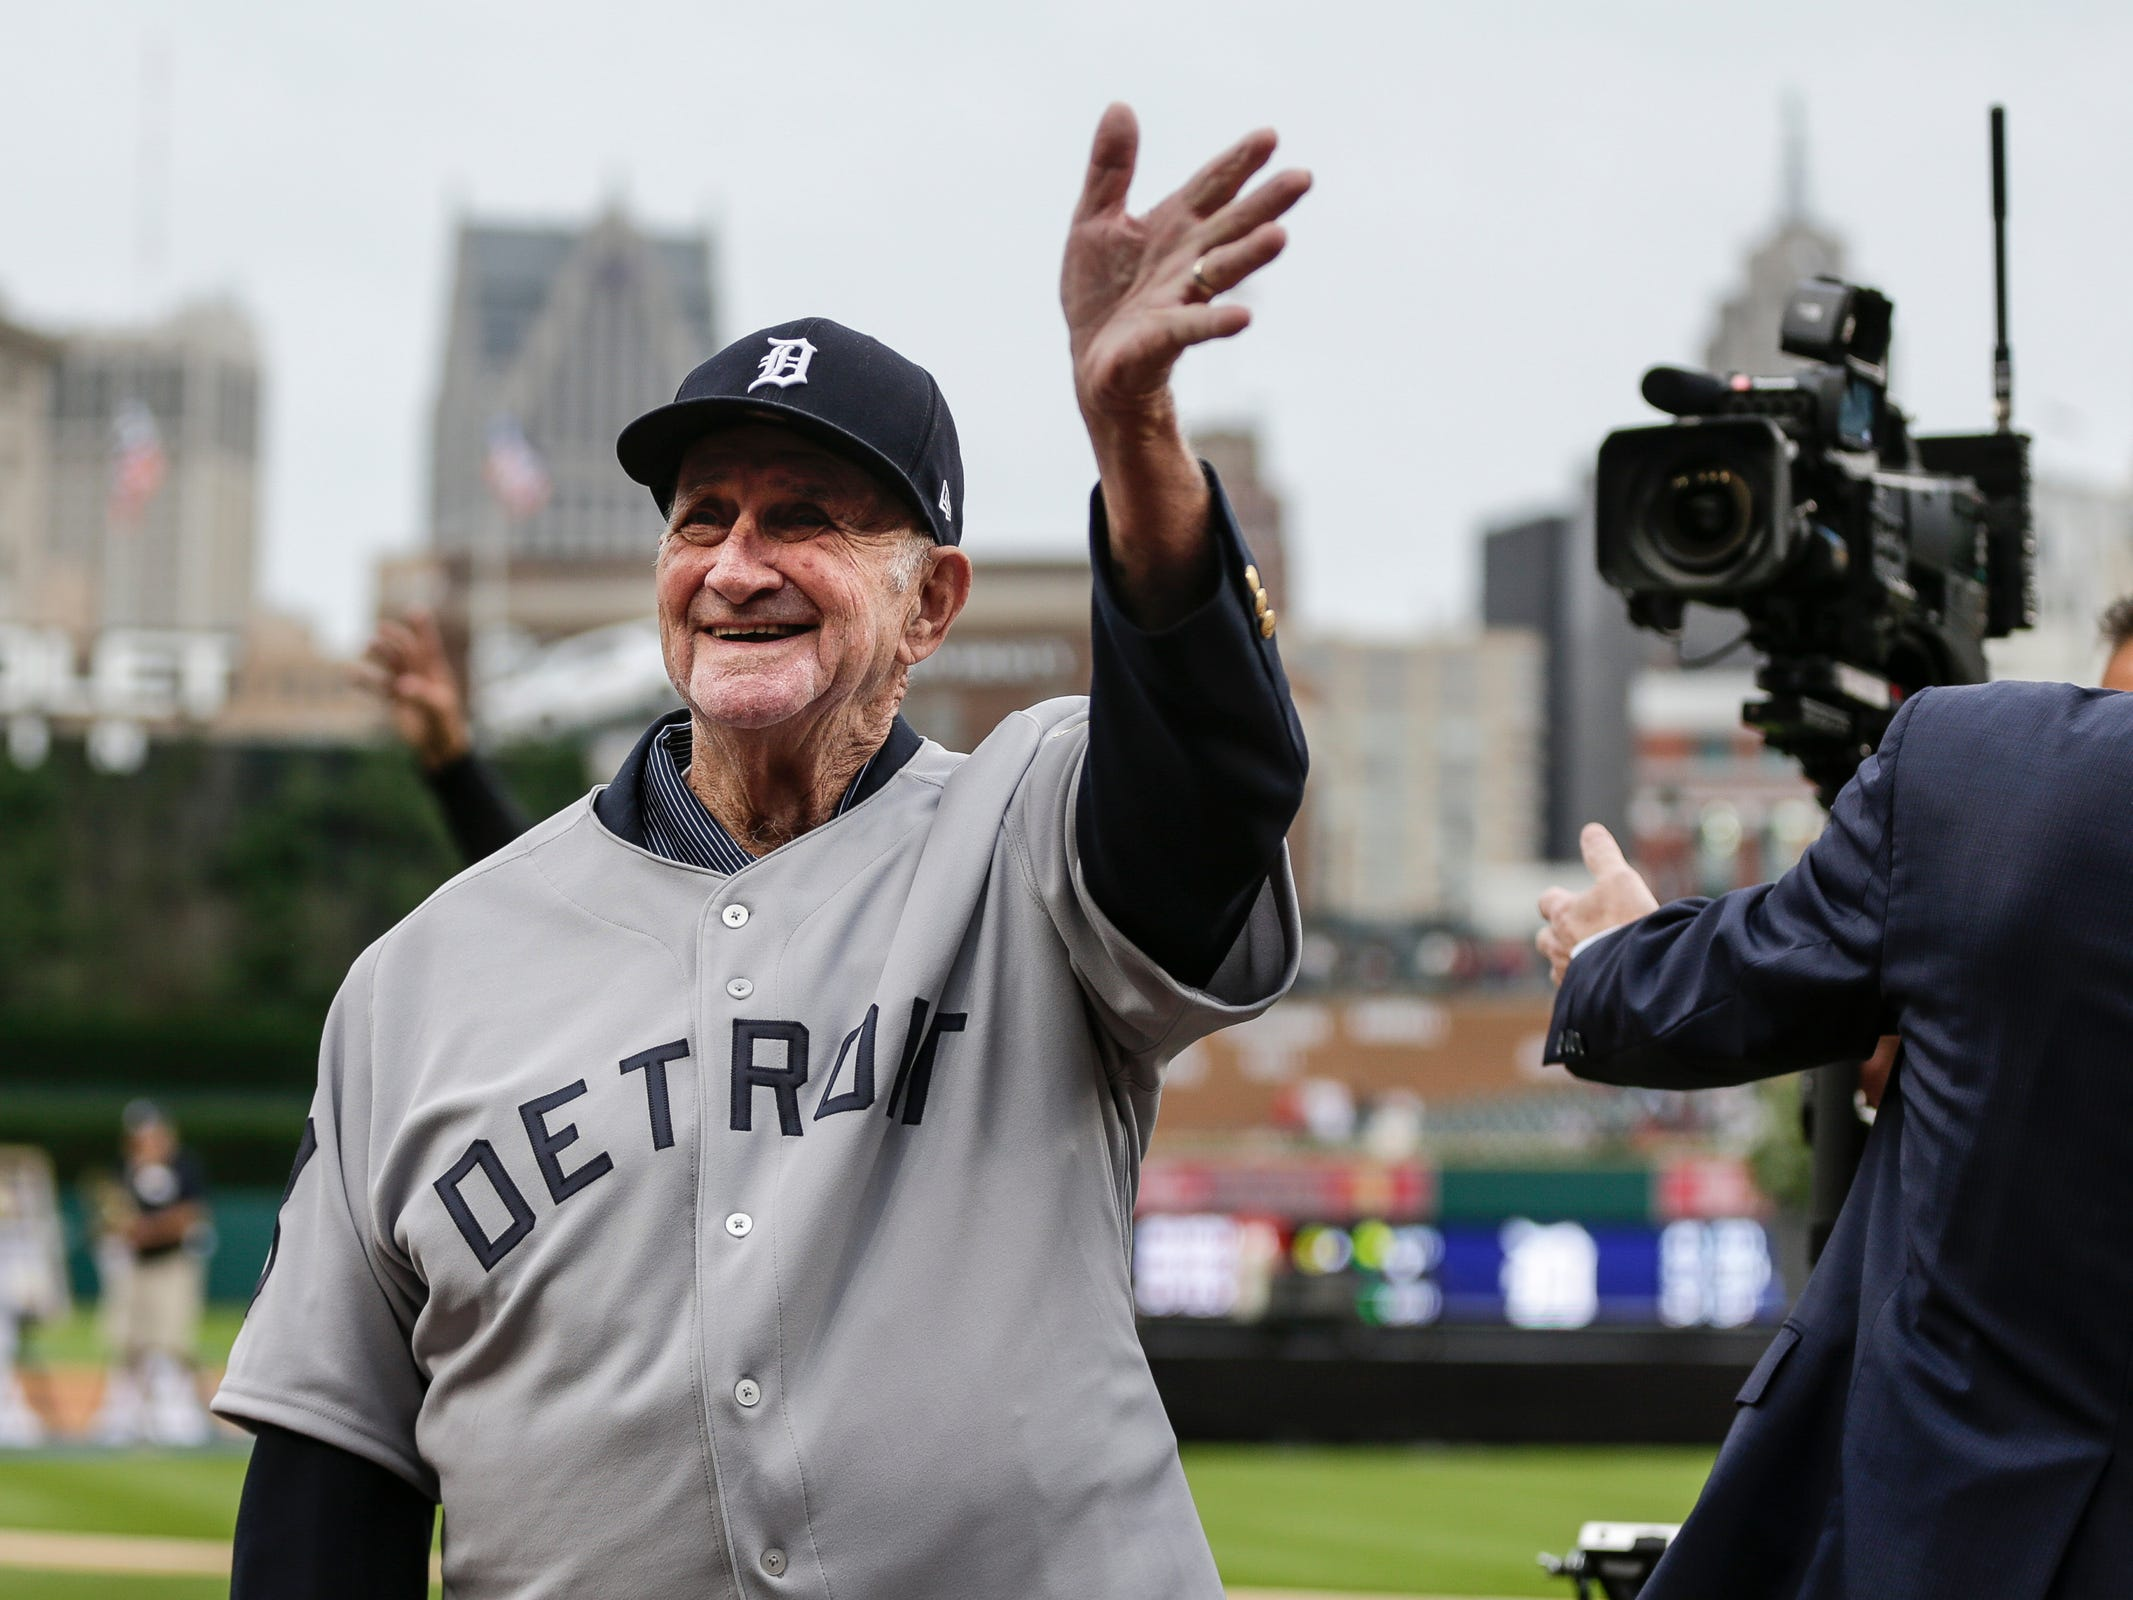 Former Detroit Tigers third baseman Don Wert waves at the crowd during the celebration of the 50th anniversary of the 1968 World Series championship at Comerica Park in Detroit, Saturday, Sept. 8, 2018.